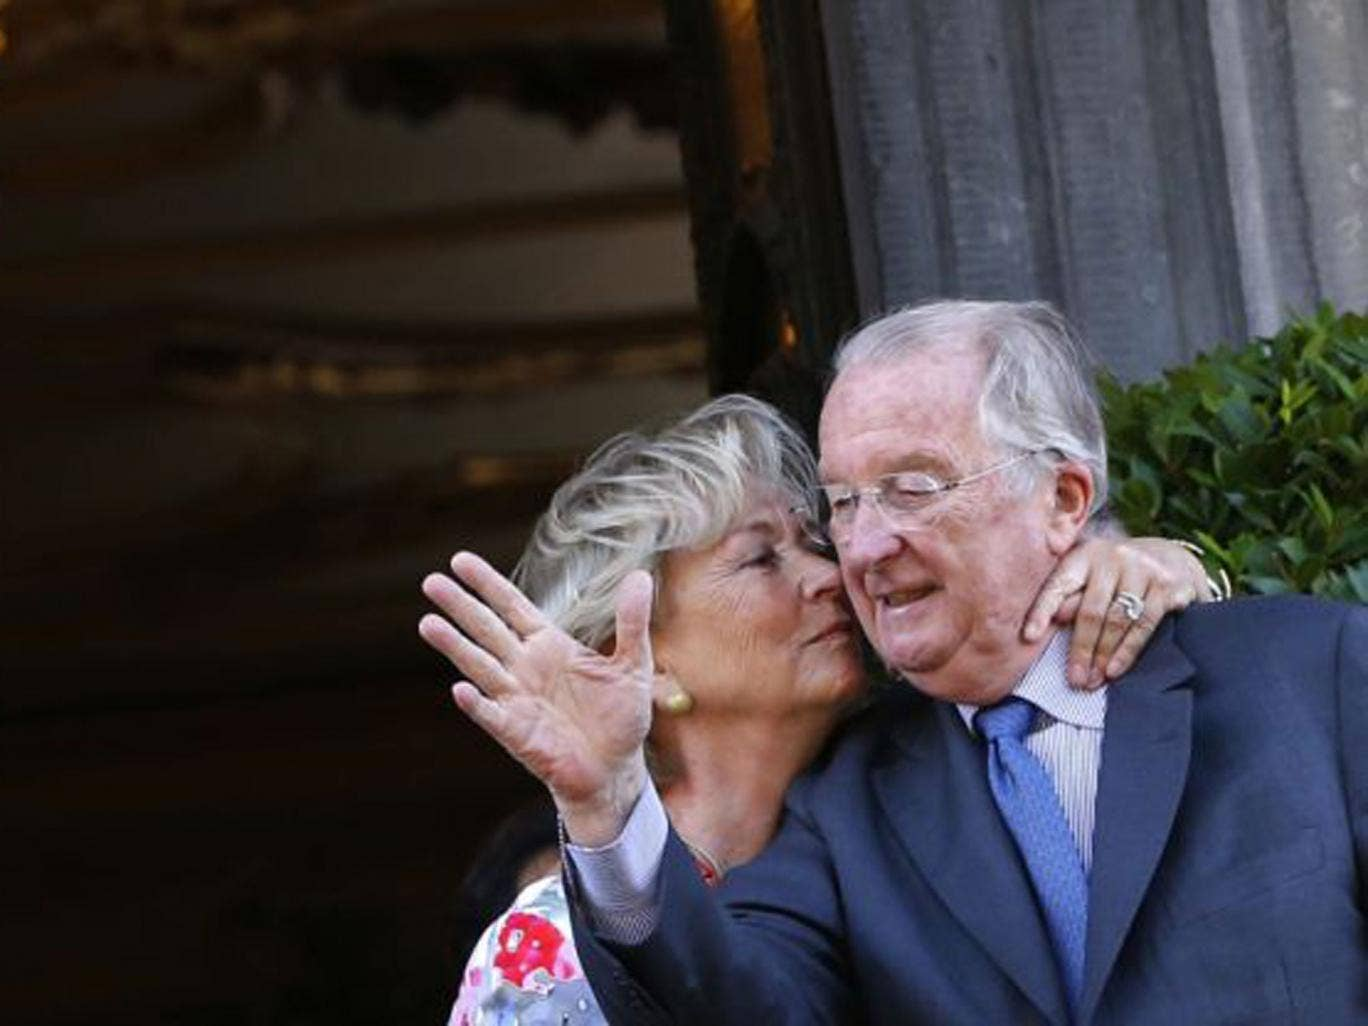 King Albert II and Queen Paola in Liège yesterday